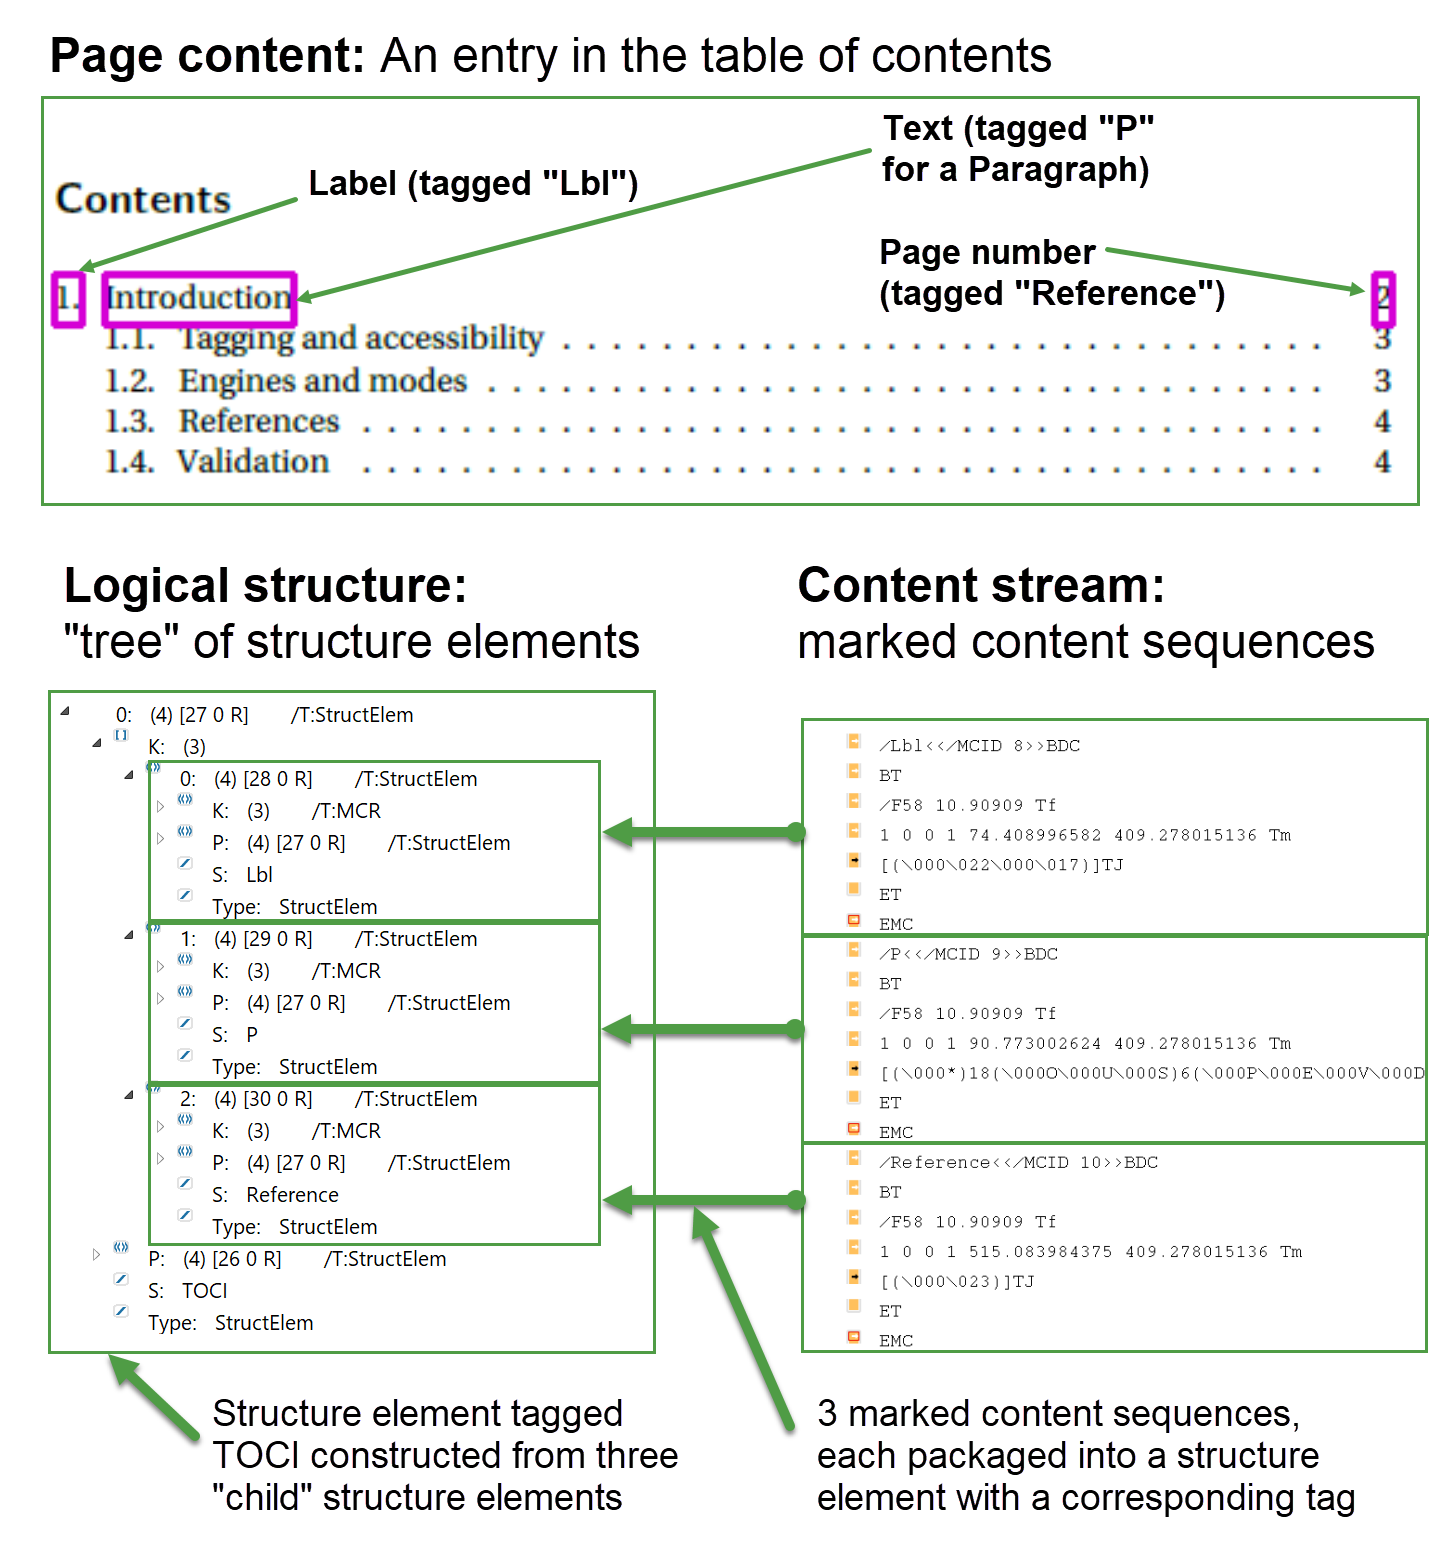 Image explaining structure elements and marked content sequences